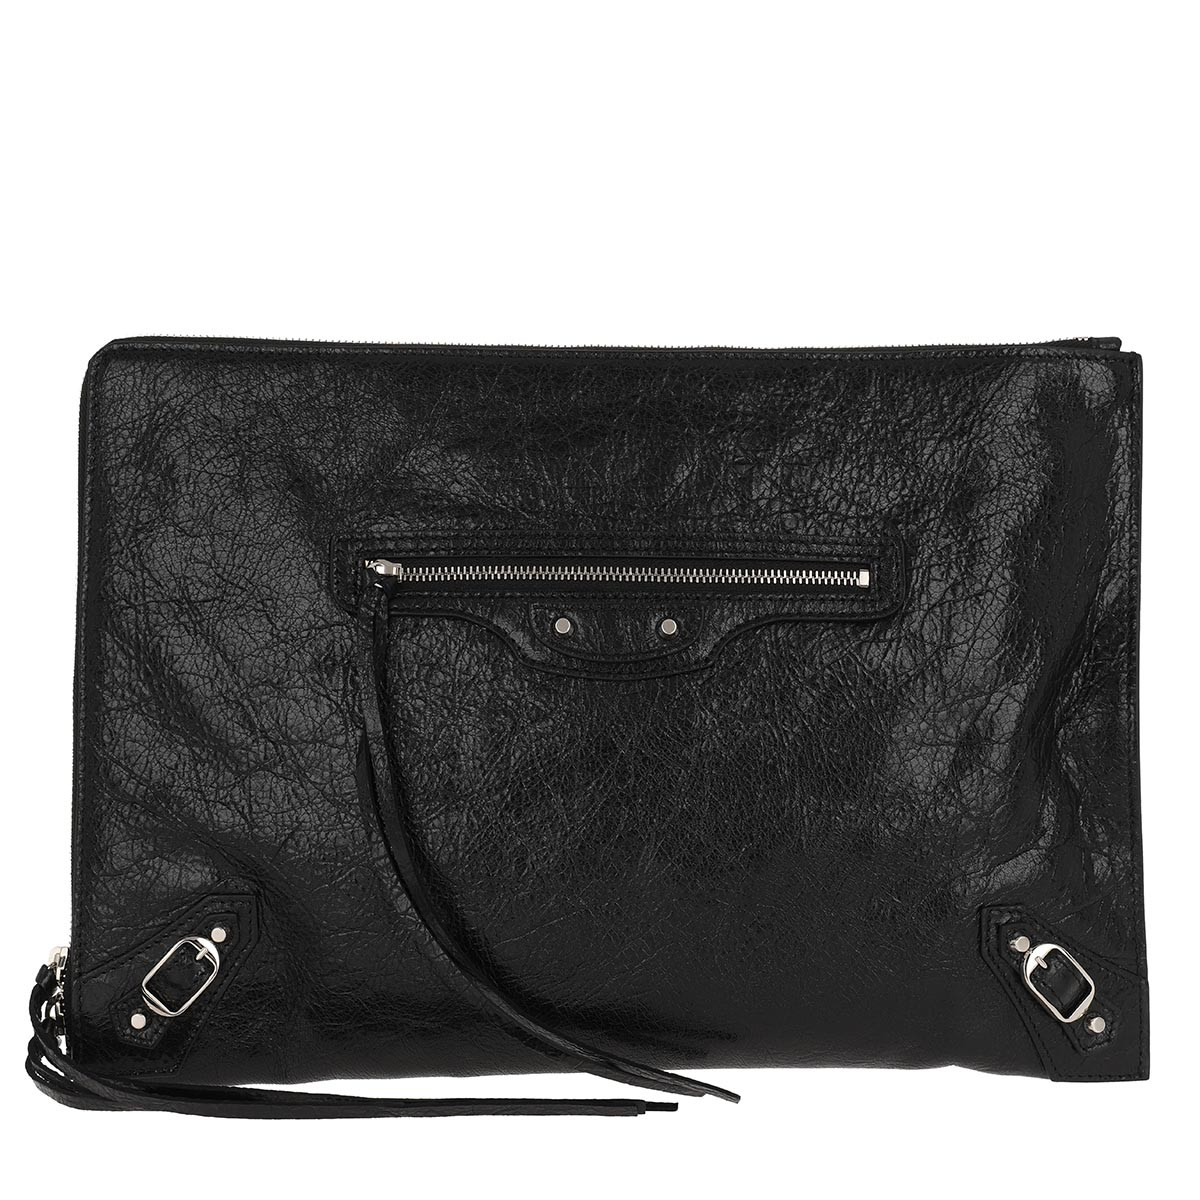 Balenciaga Clutch - Classic City Clutch Leather Black - in schwarz - für Damen